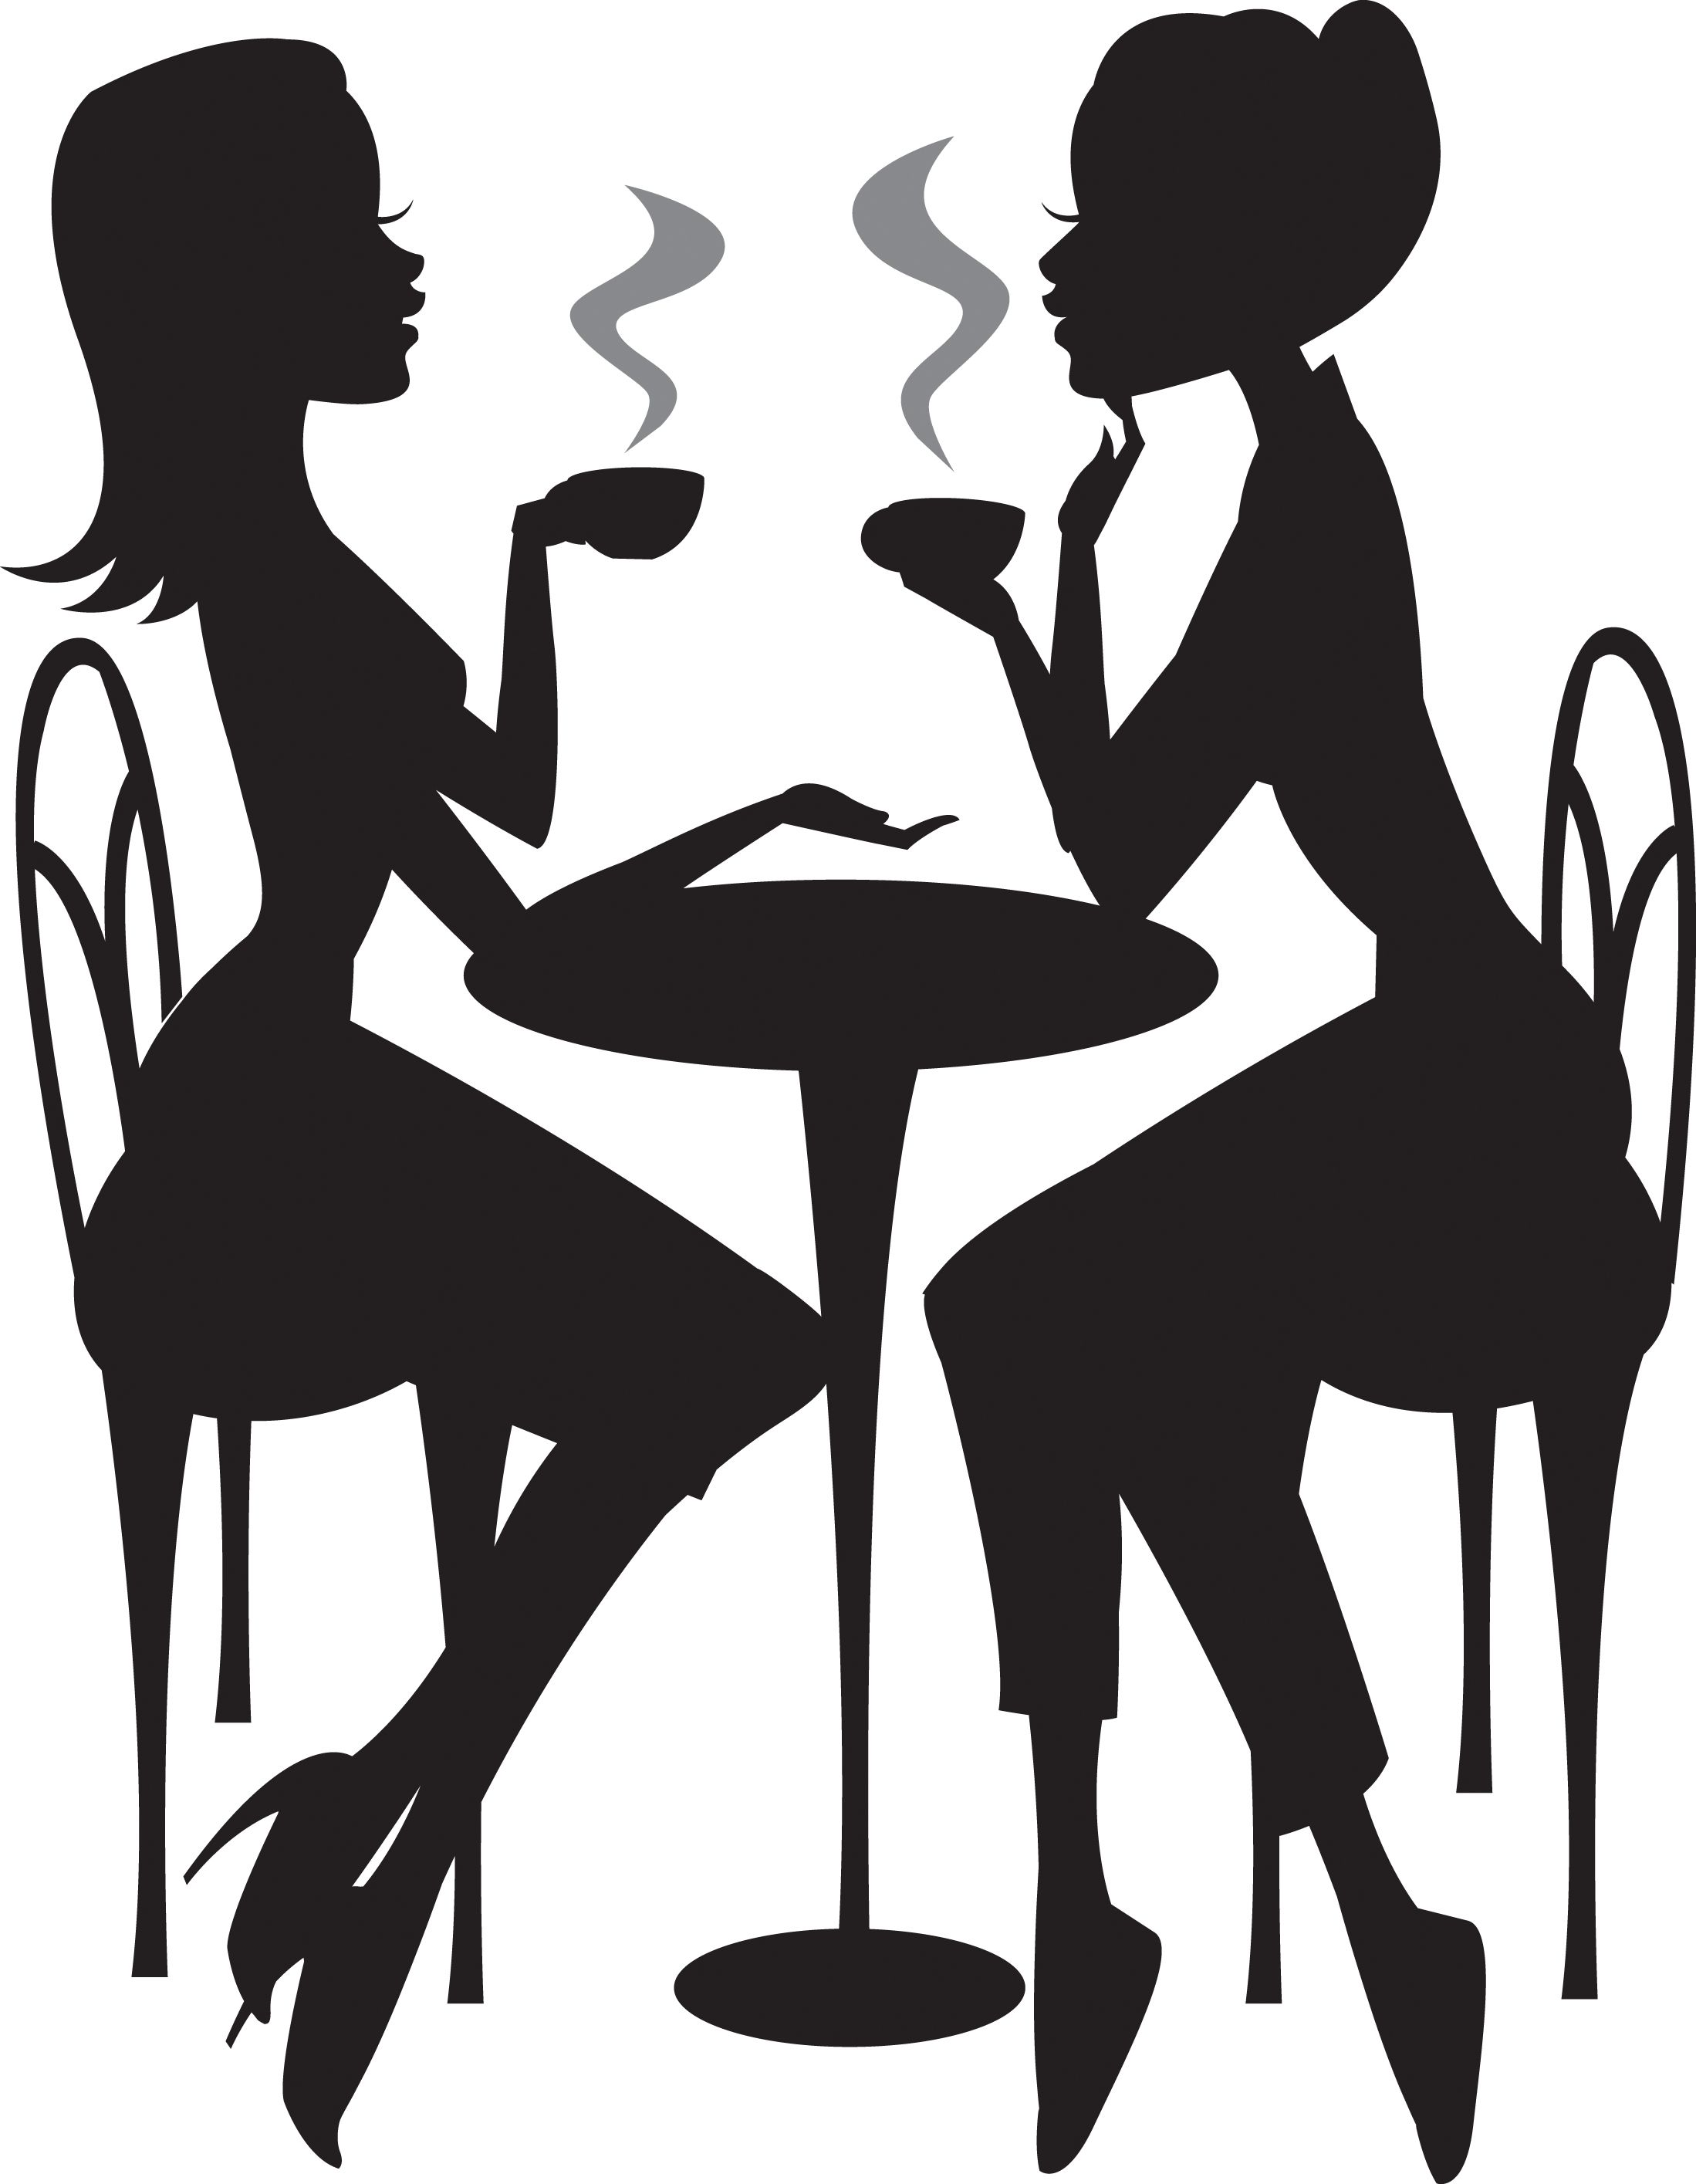 2198x2830 Cafe Placeholder French Cafe, Cafes And Silhouettes